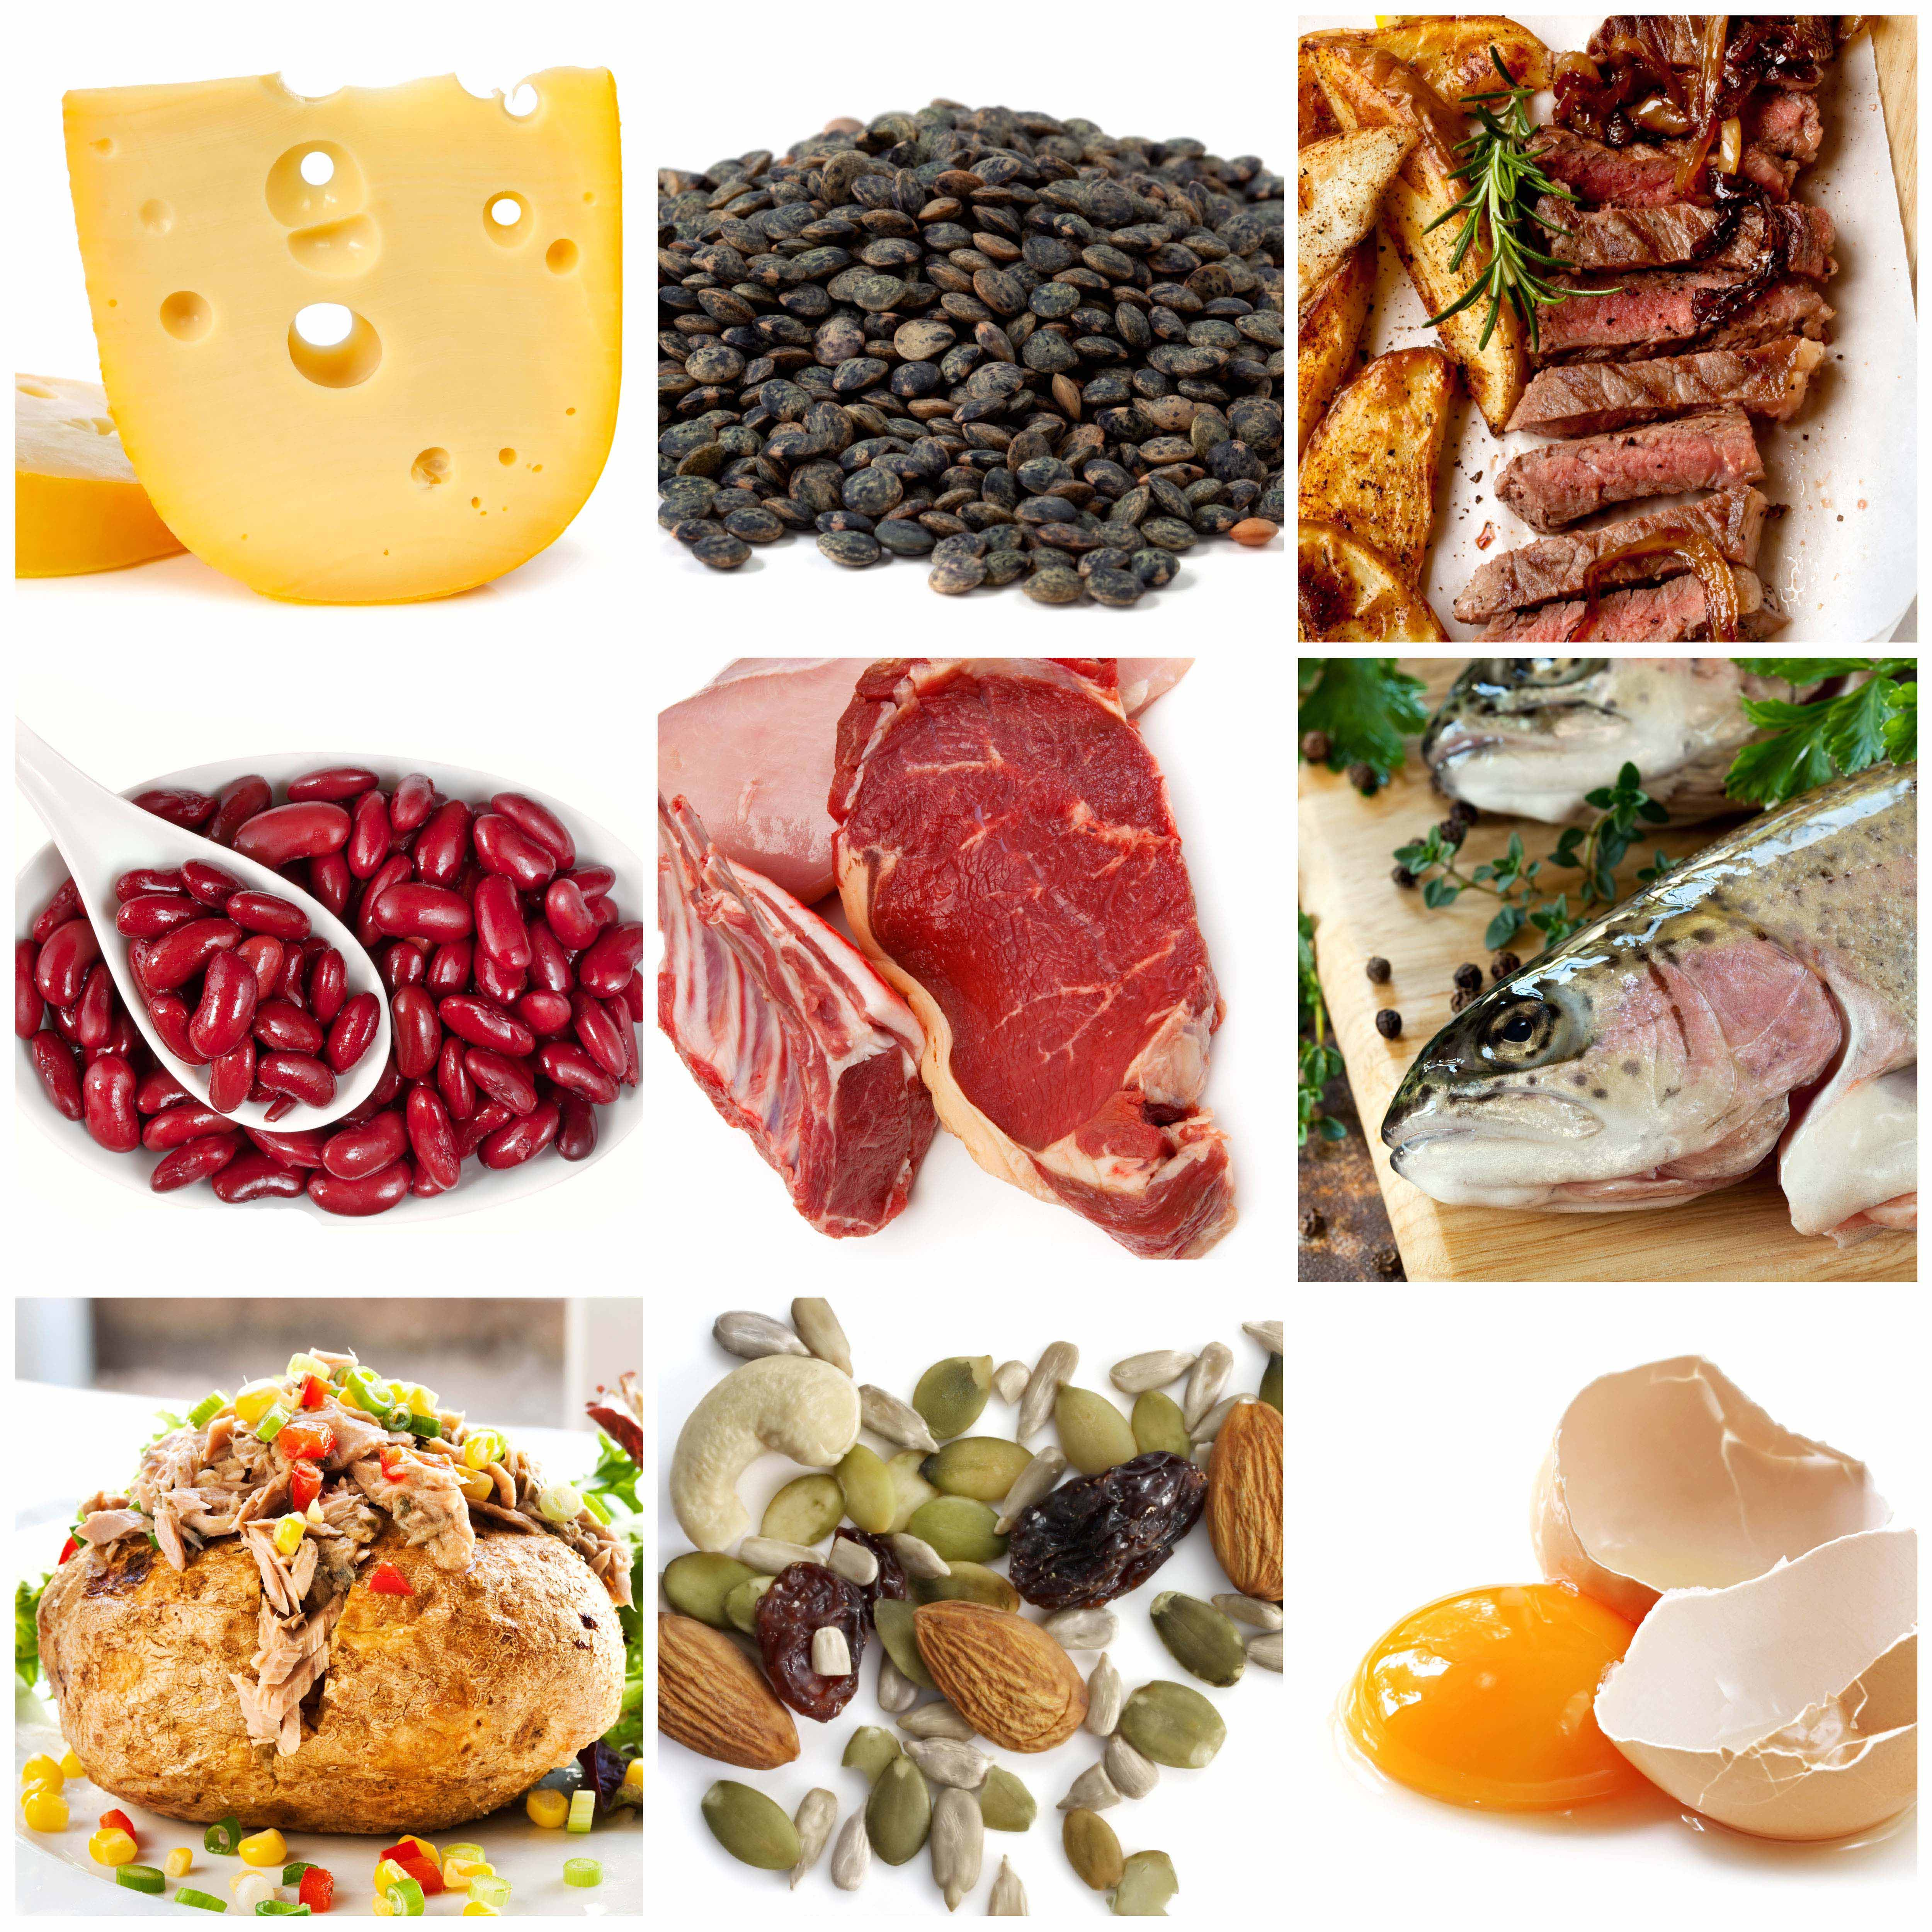 #6 How to Count Macronutrients